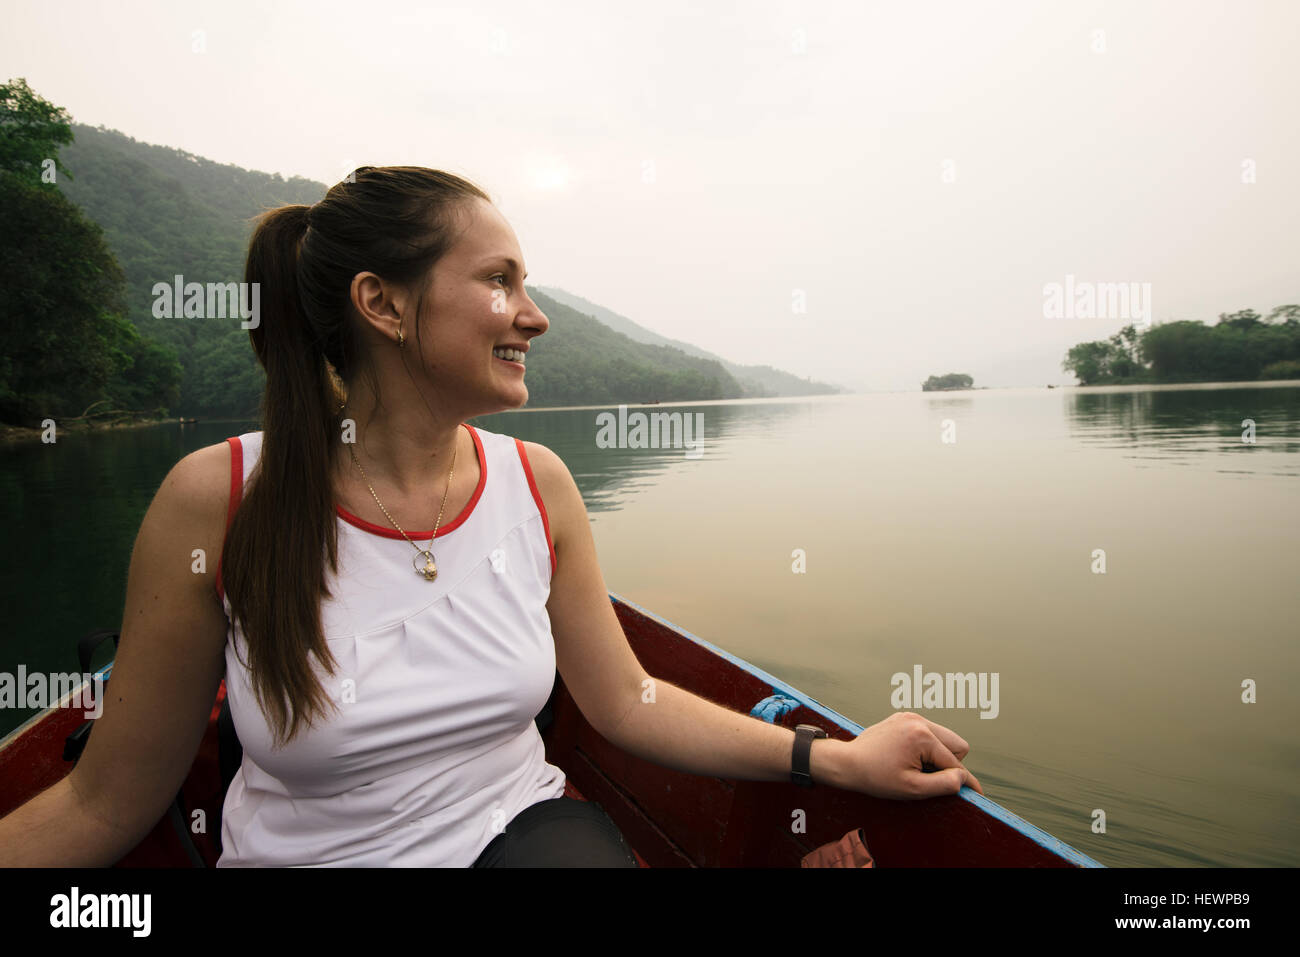 Woman on boat on lake, Pokhara, Nepal - Stock Image